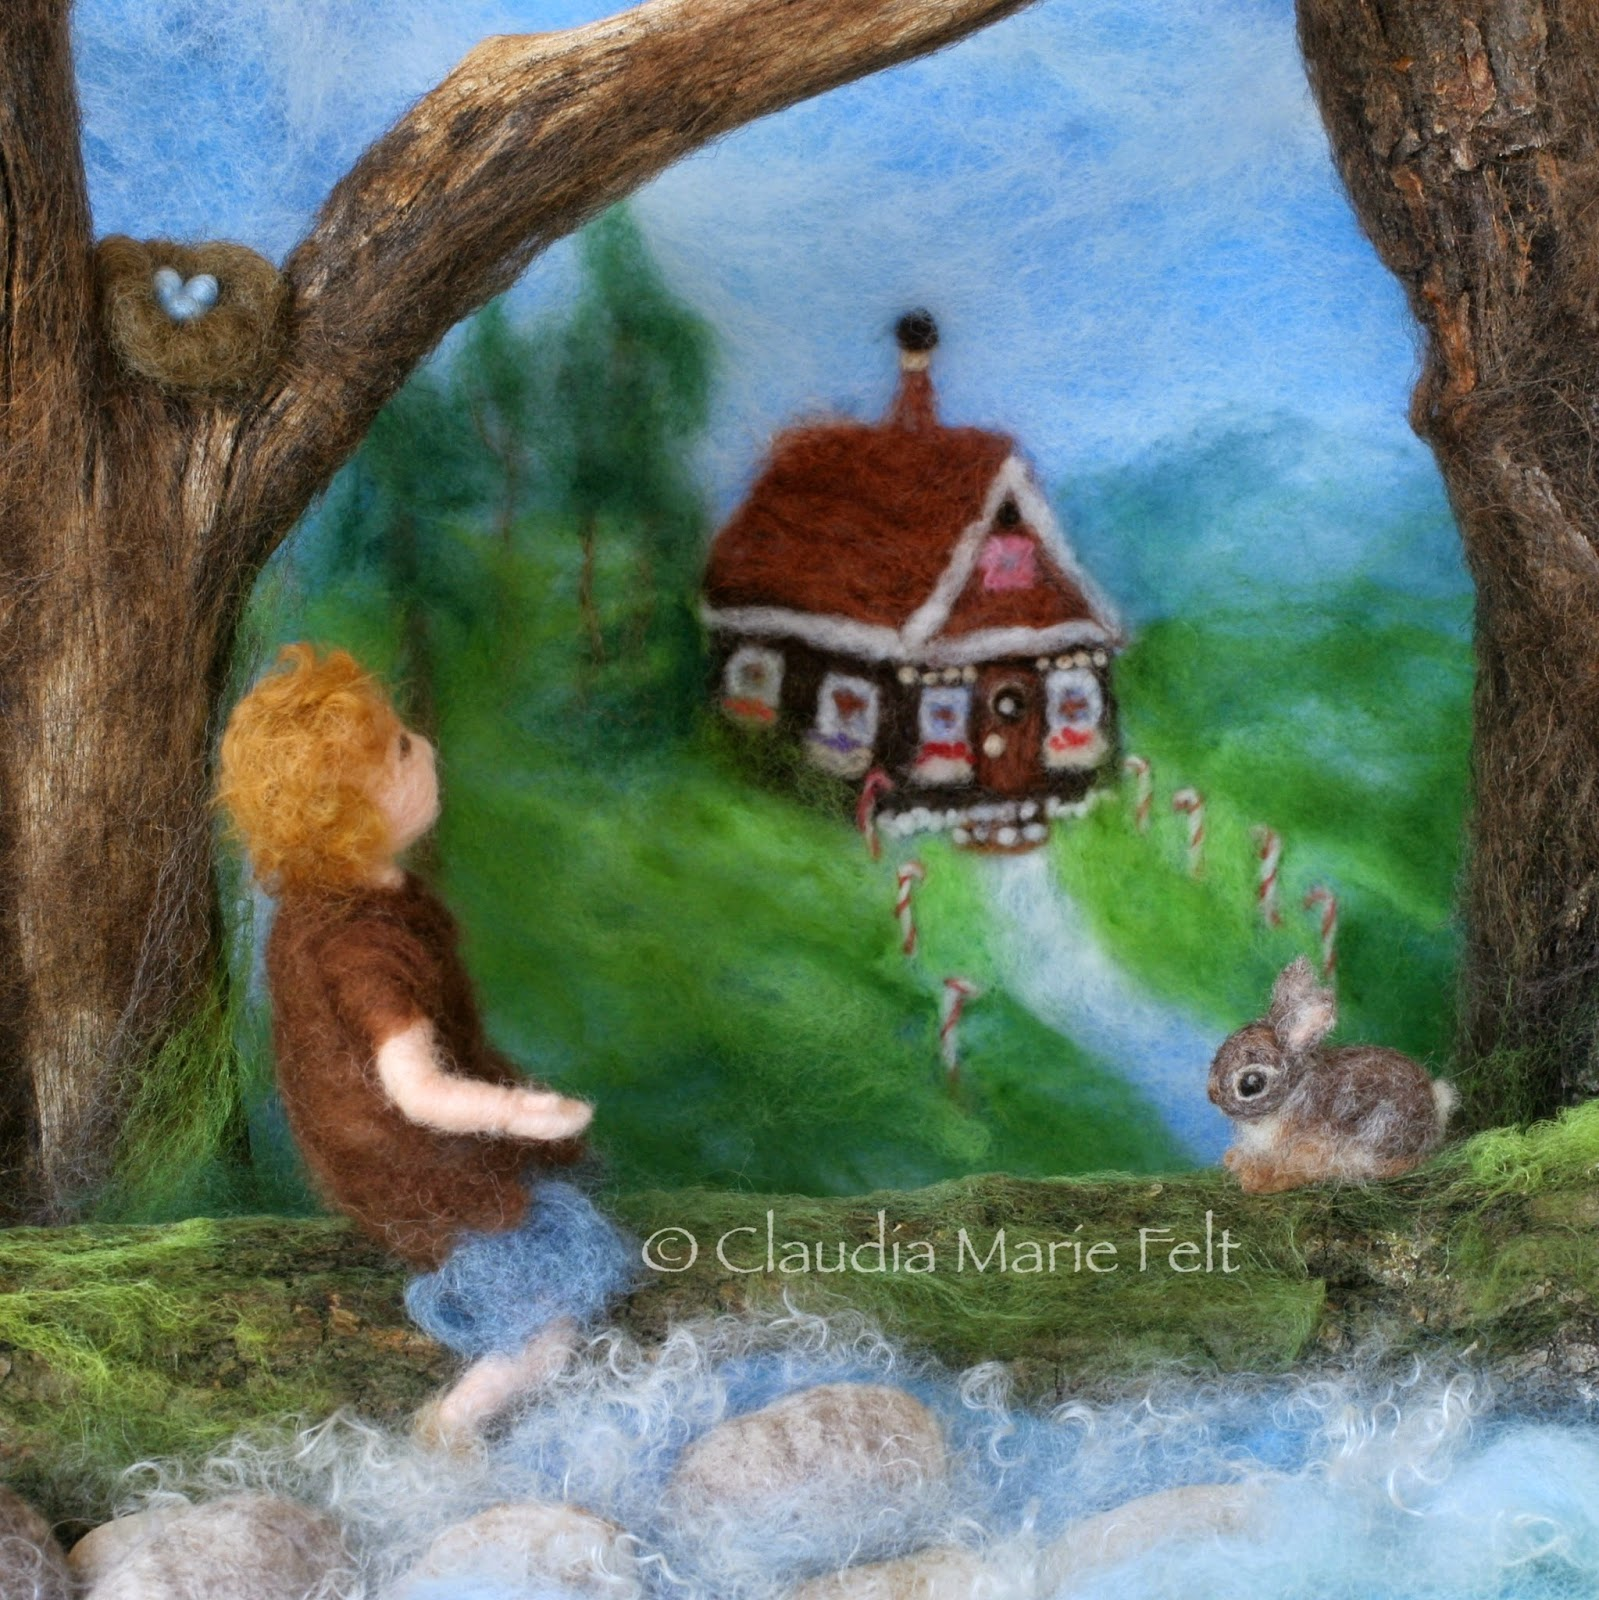 Needle Felt Book Illustration by Claudia Marie Felt